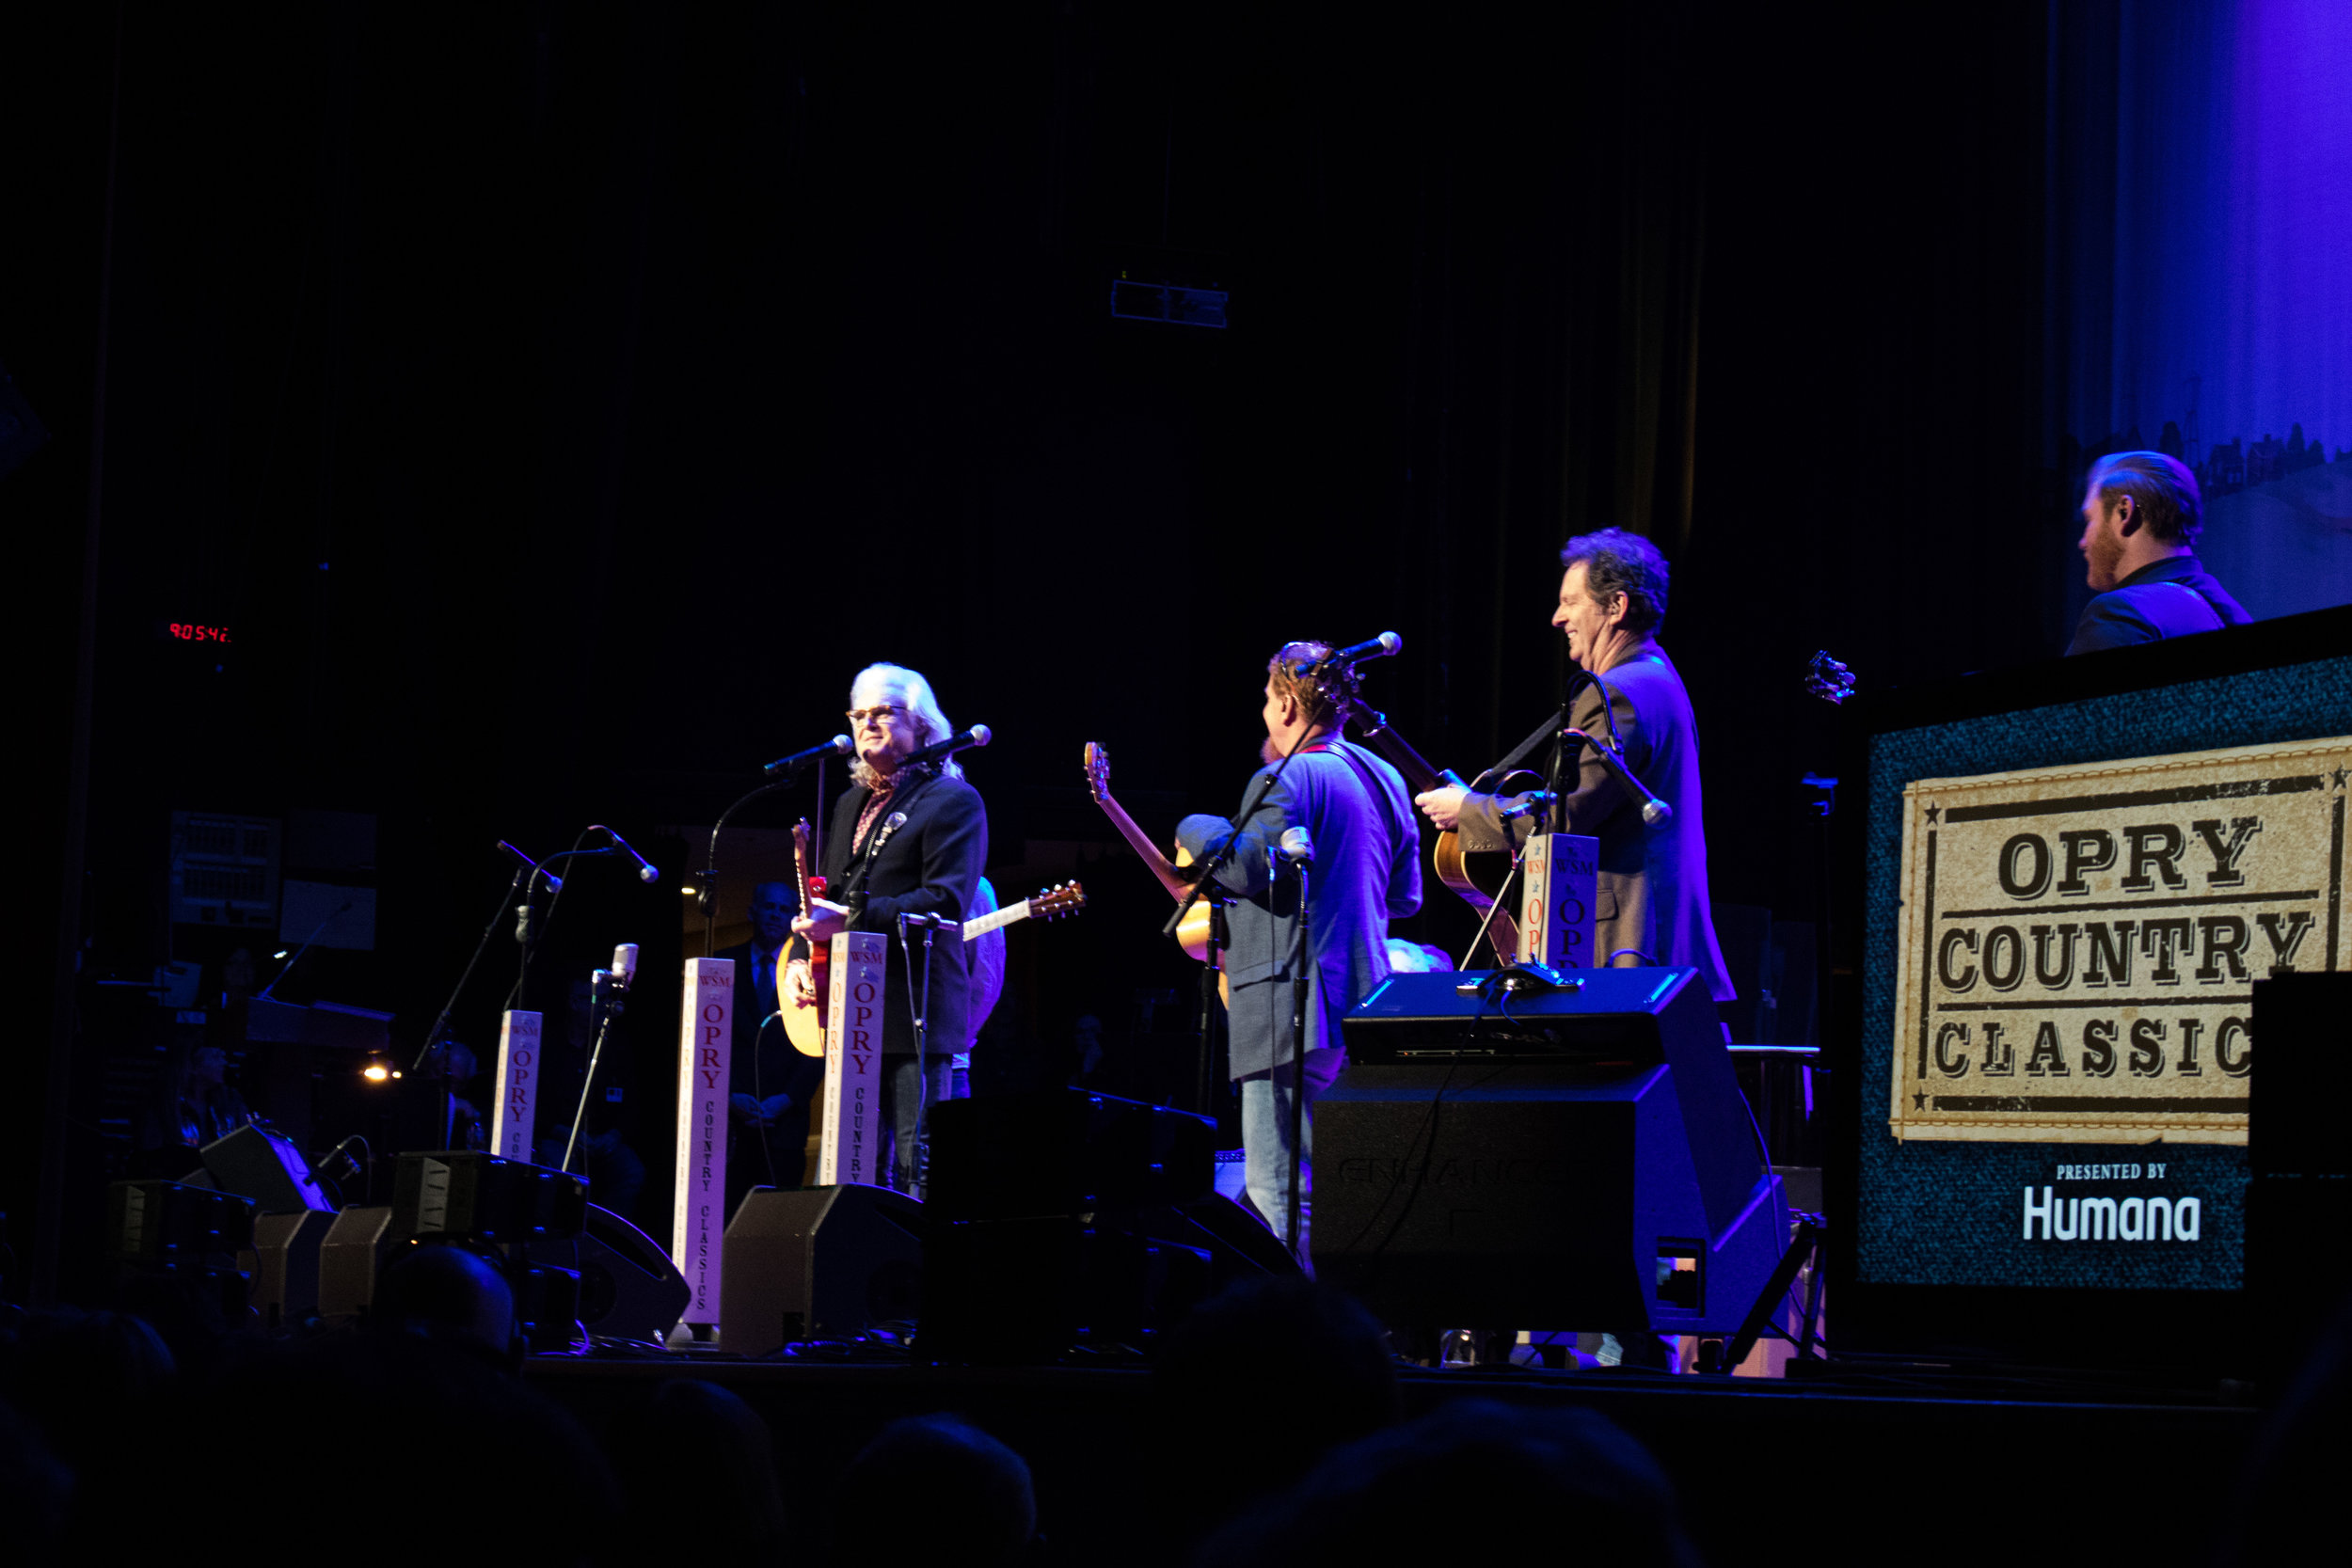 Opry-Country-Classics